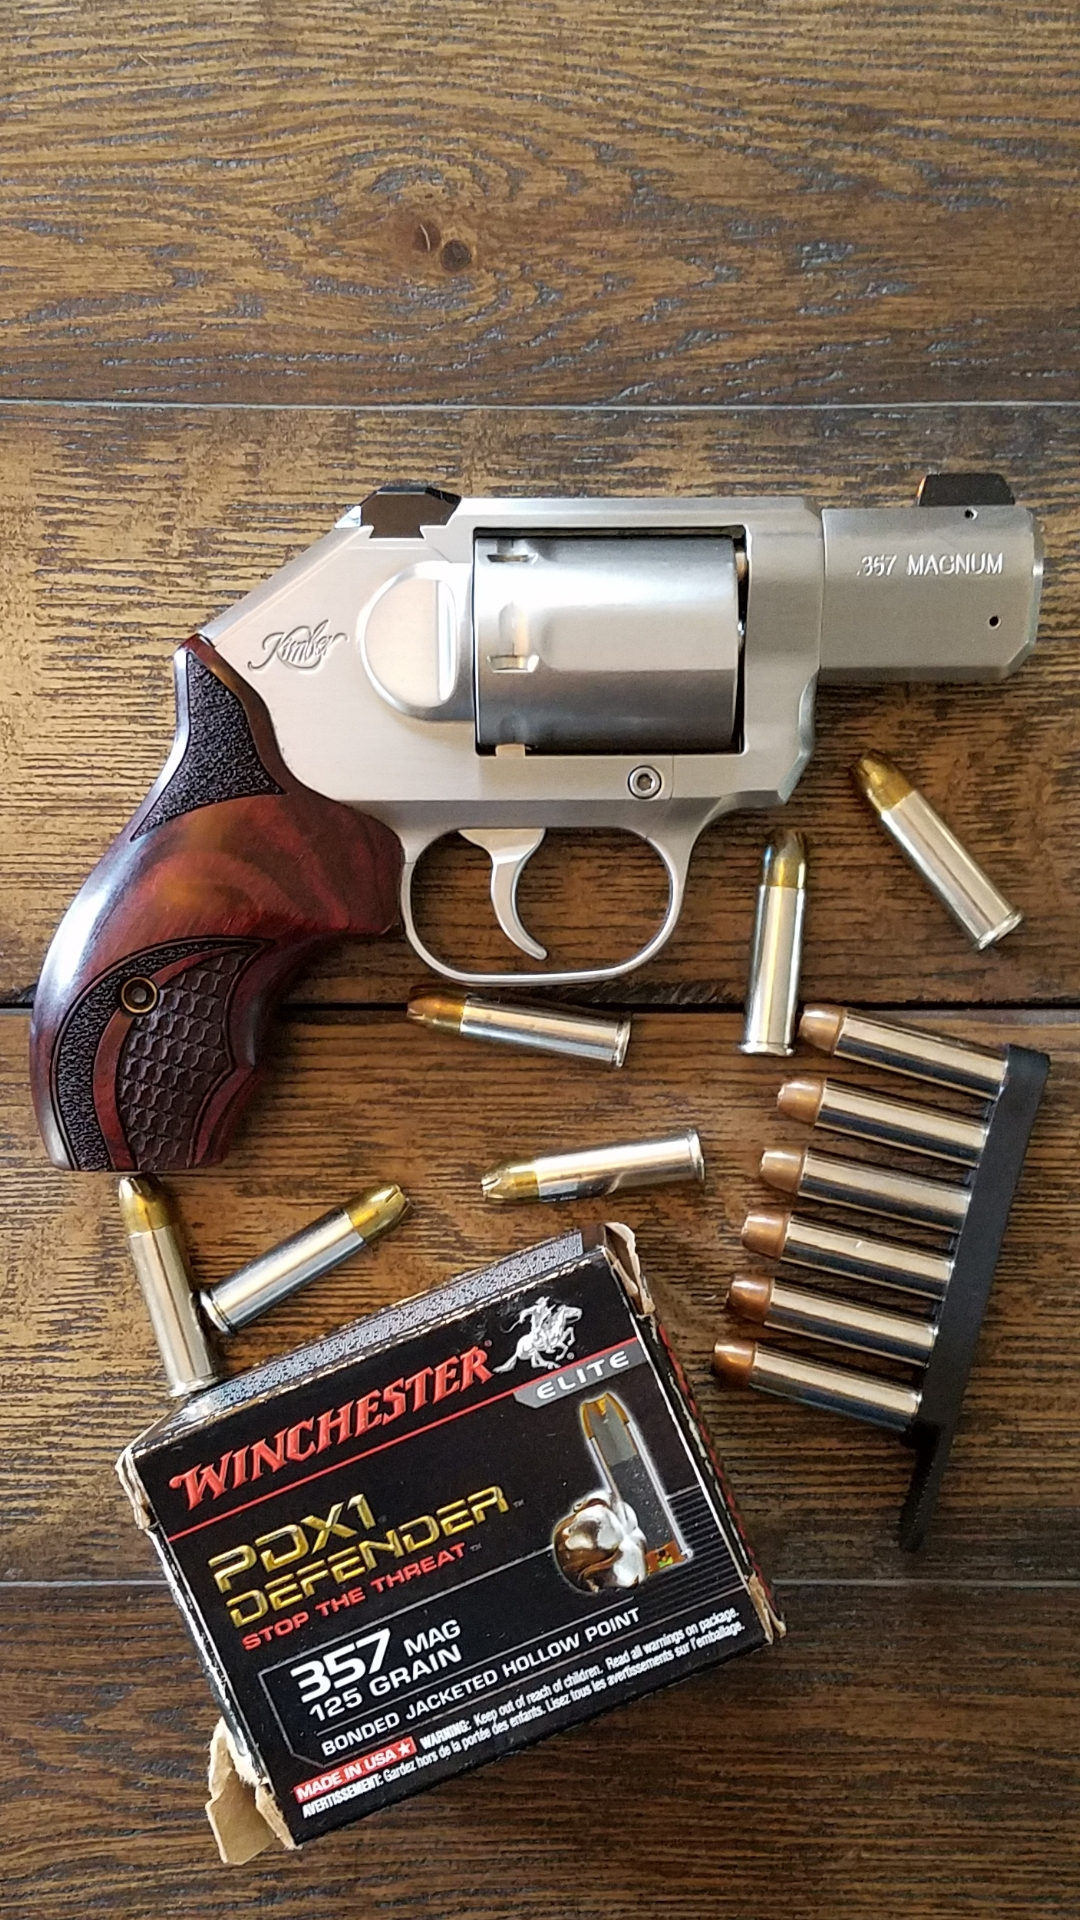 Who carries a Kimber revolver? comments pros & cons-screenshot_20190803-211307_gallery_1564886034843.jpg